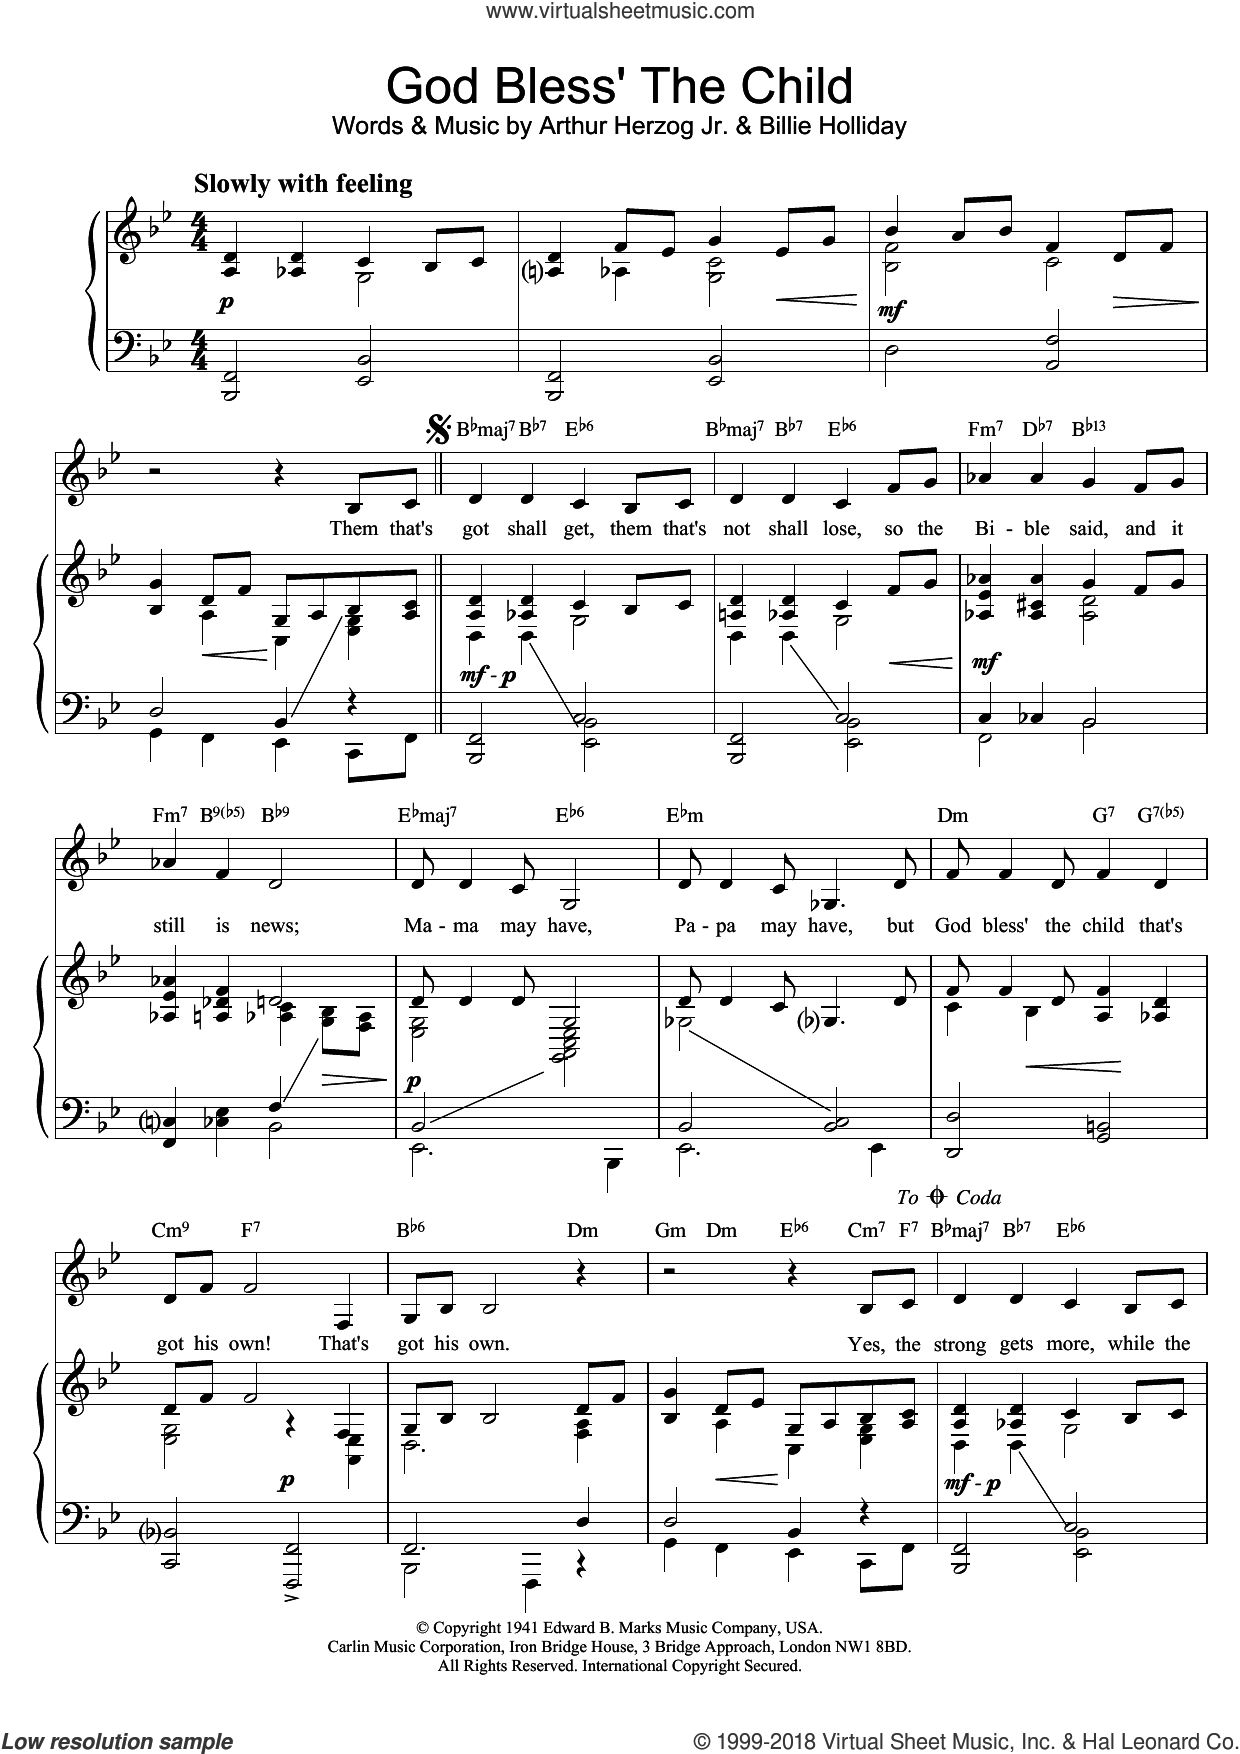 God Bless' The Child sheet music for voice, piano or guitar by Arthur Herzog Jr. and Billie Holiday